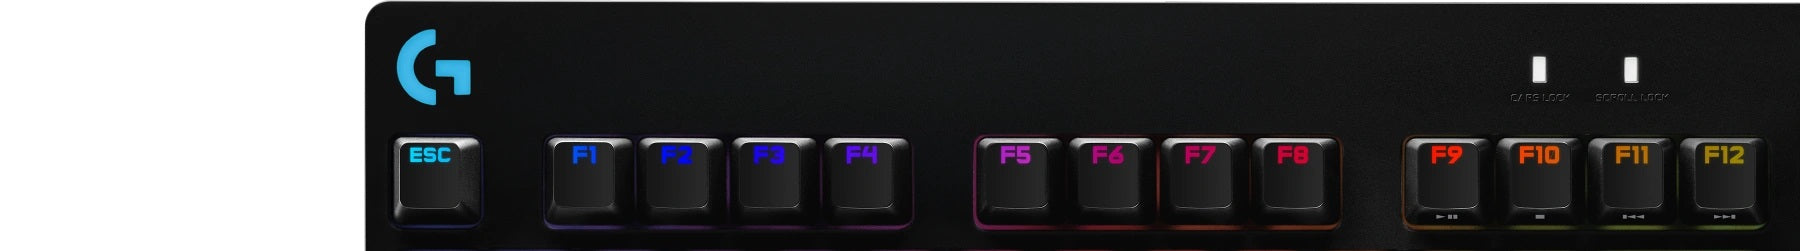 12 PROGRAMMABLE F-KEY MACROS - Program intricate, timed actions or commands to F1-F12 with Logitech G HUB.